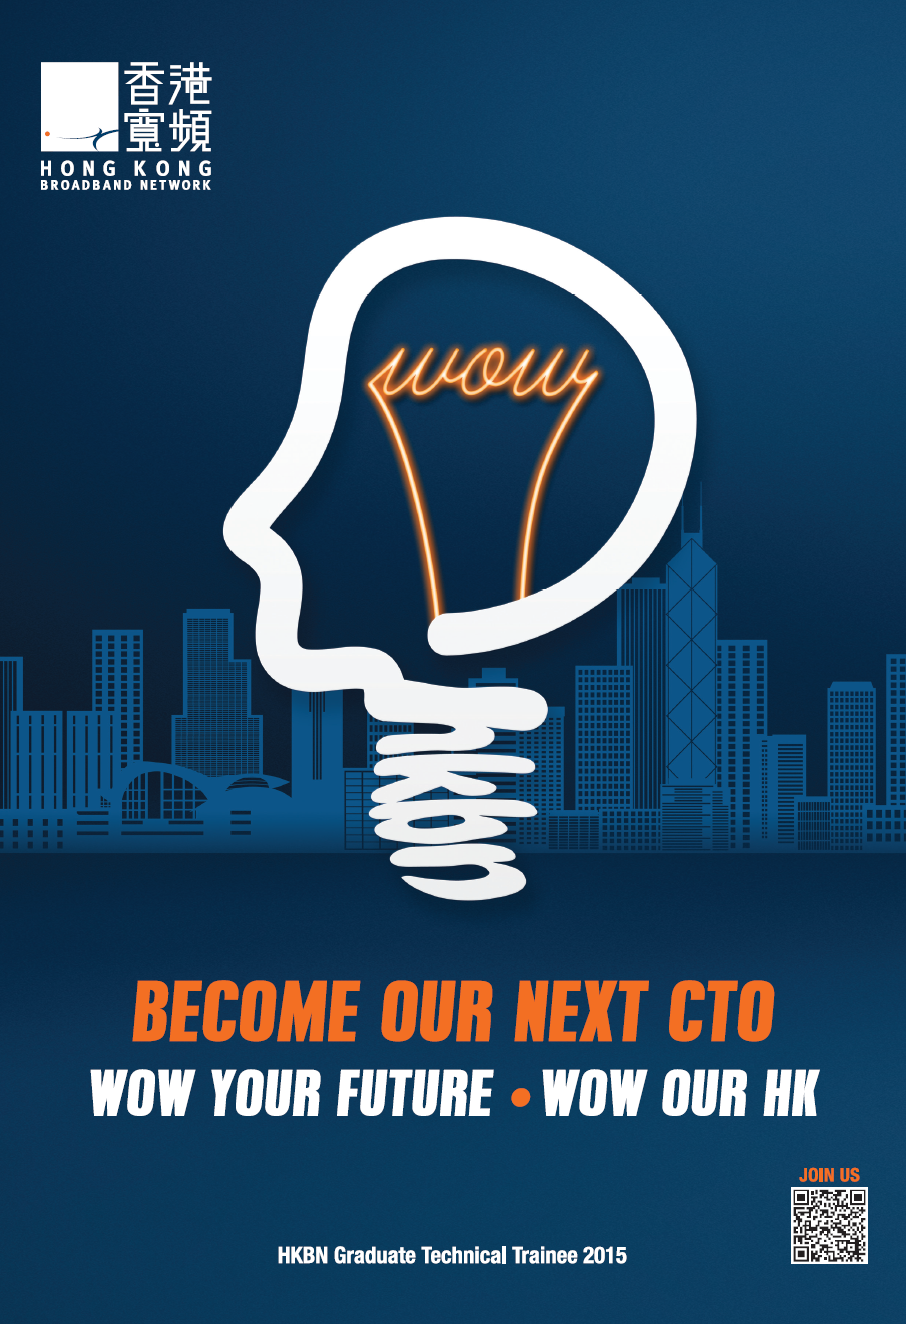 HKBN Graduate Techical Trainee 2015 - Become our next CTO